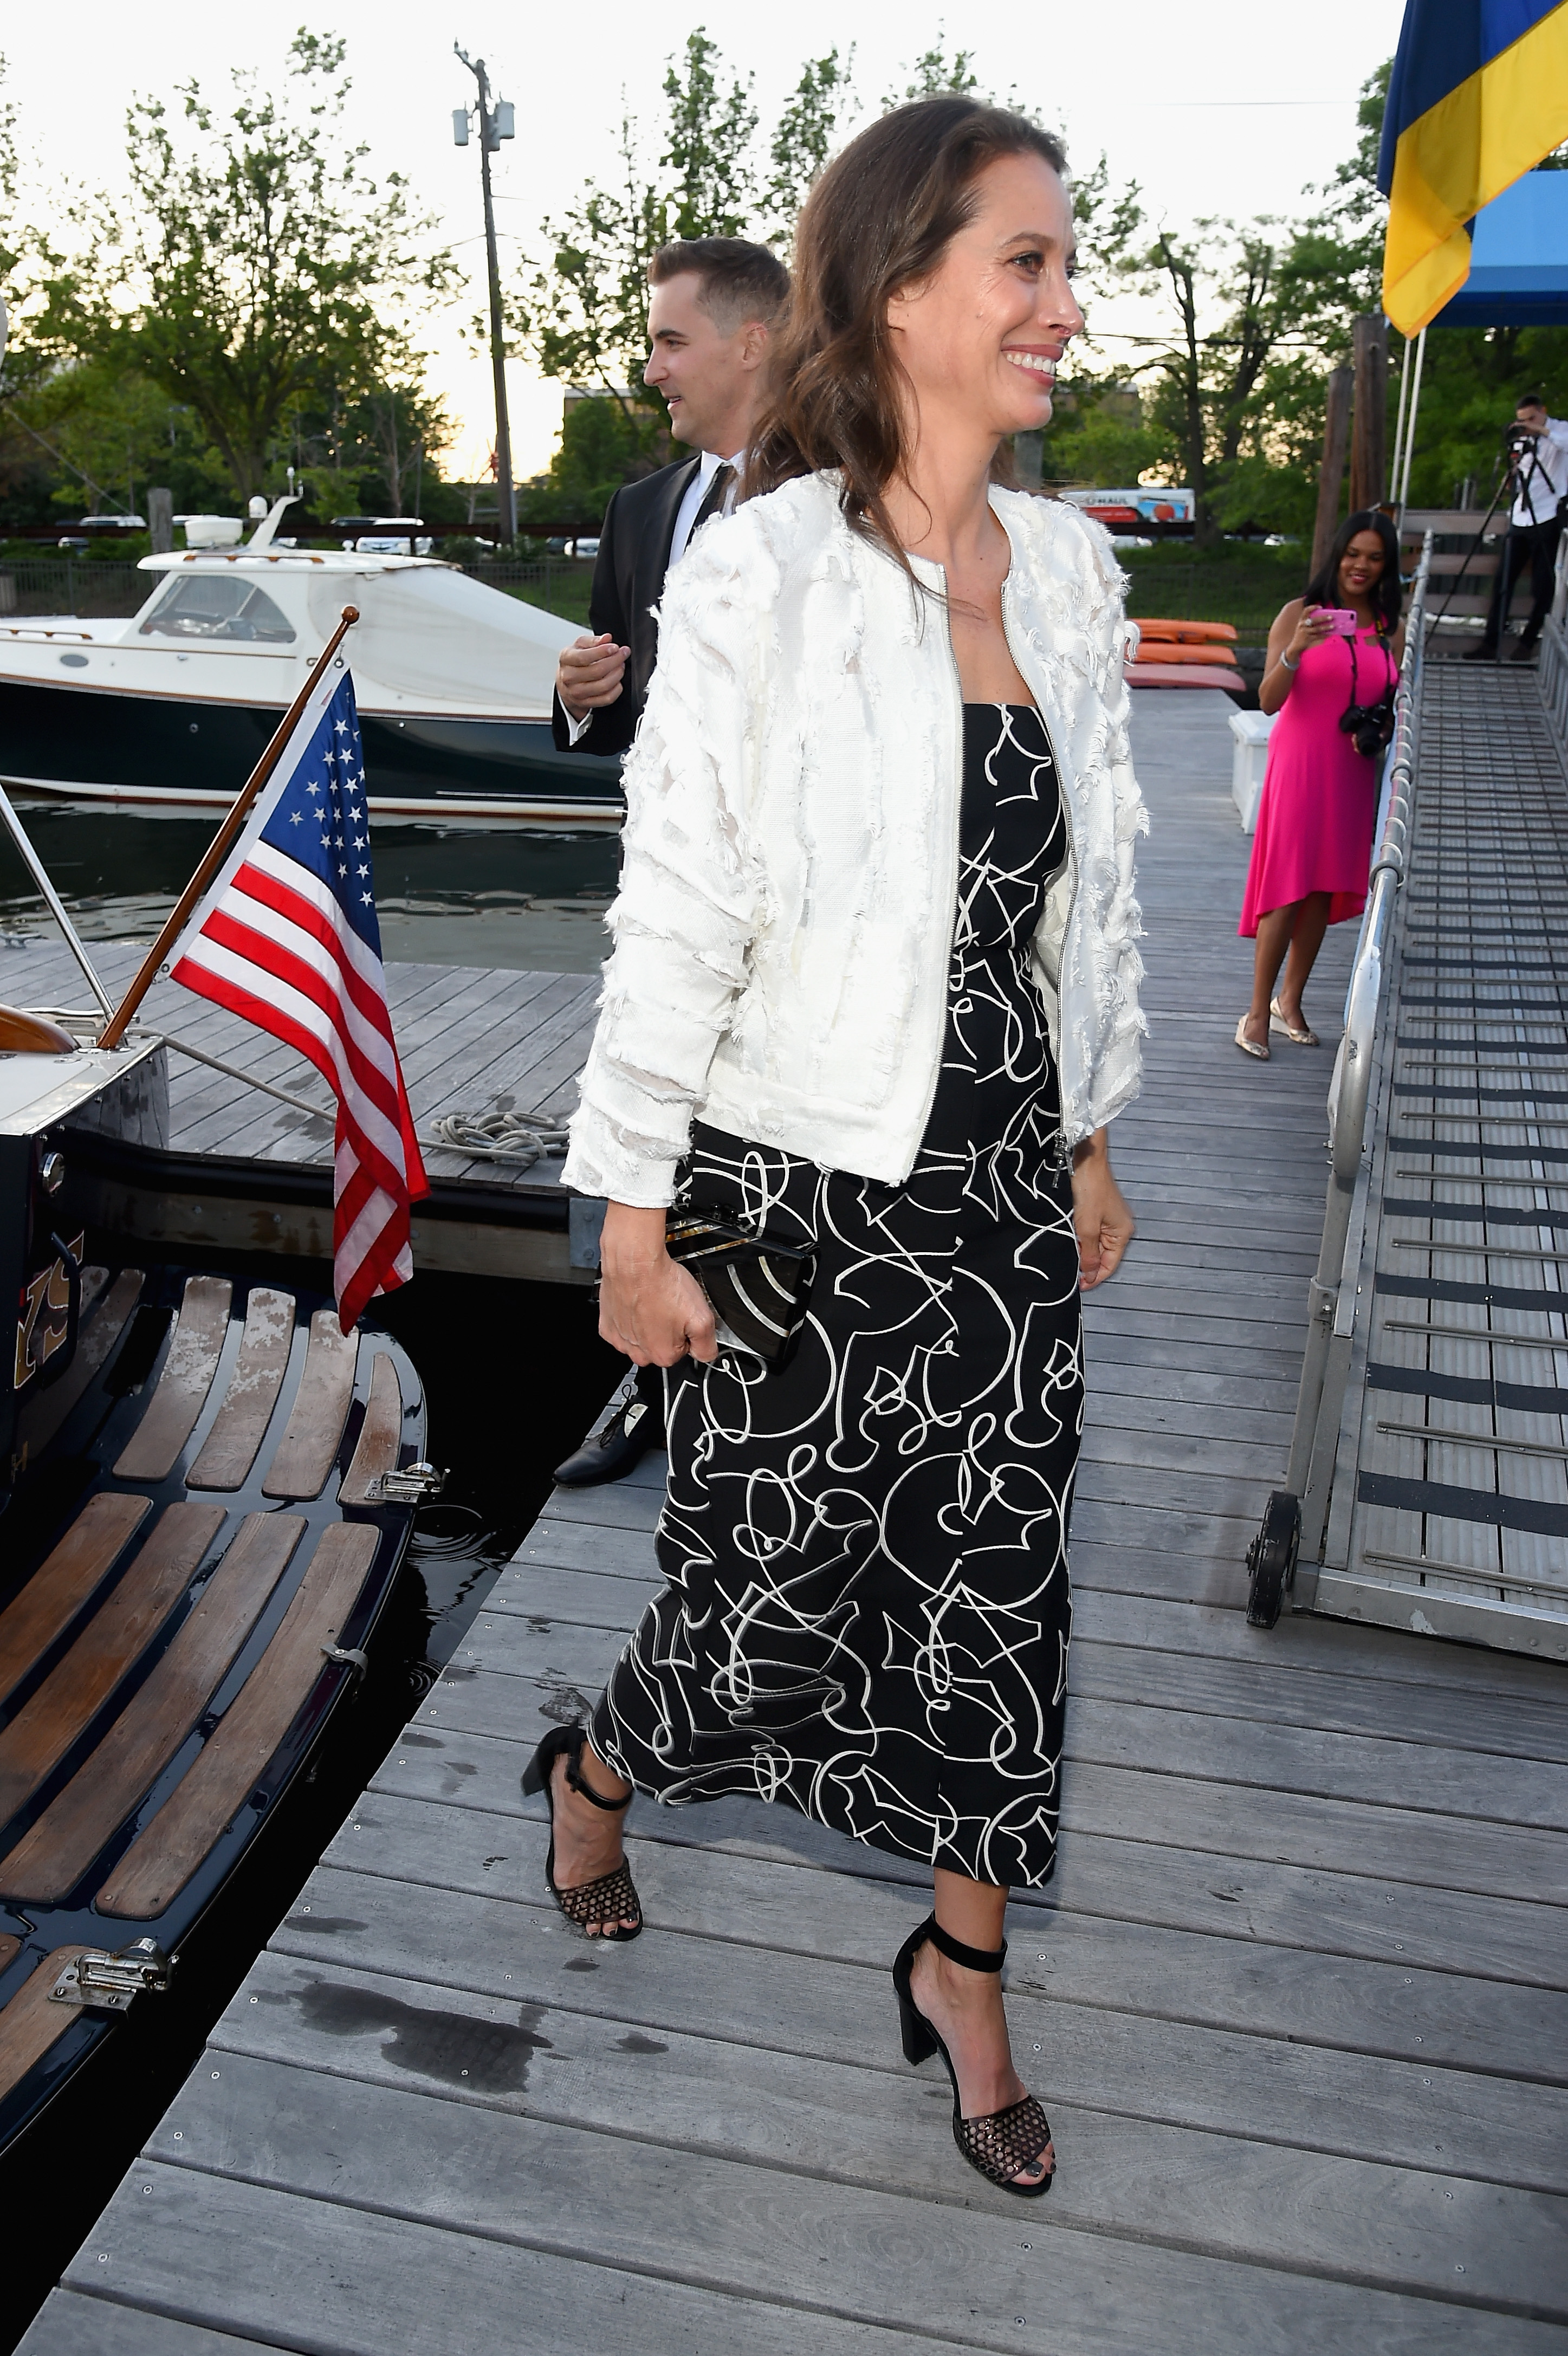 GREENWICH, CT - JUNE 01:  Christy Turlington attends the Changemaker Boat Ride during the Greenwich International Film Festival, Day 1 on June 1, 2017 in Greenwich, Connecticut.  (Photo by Ben Gabbe/Getty Images for Greenwich International Film Festival)